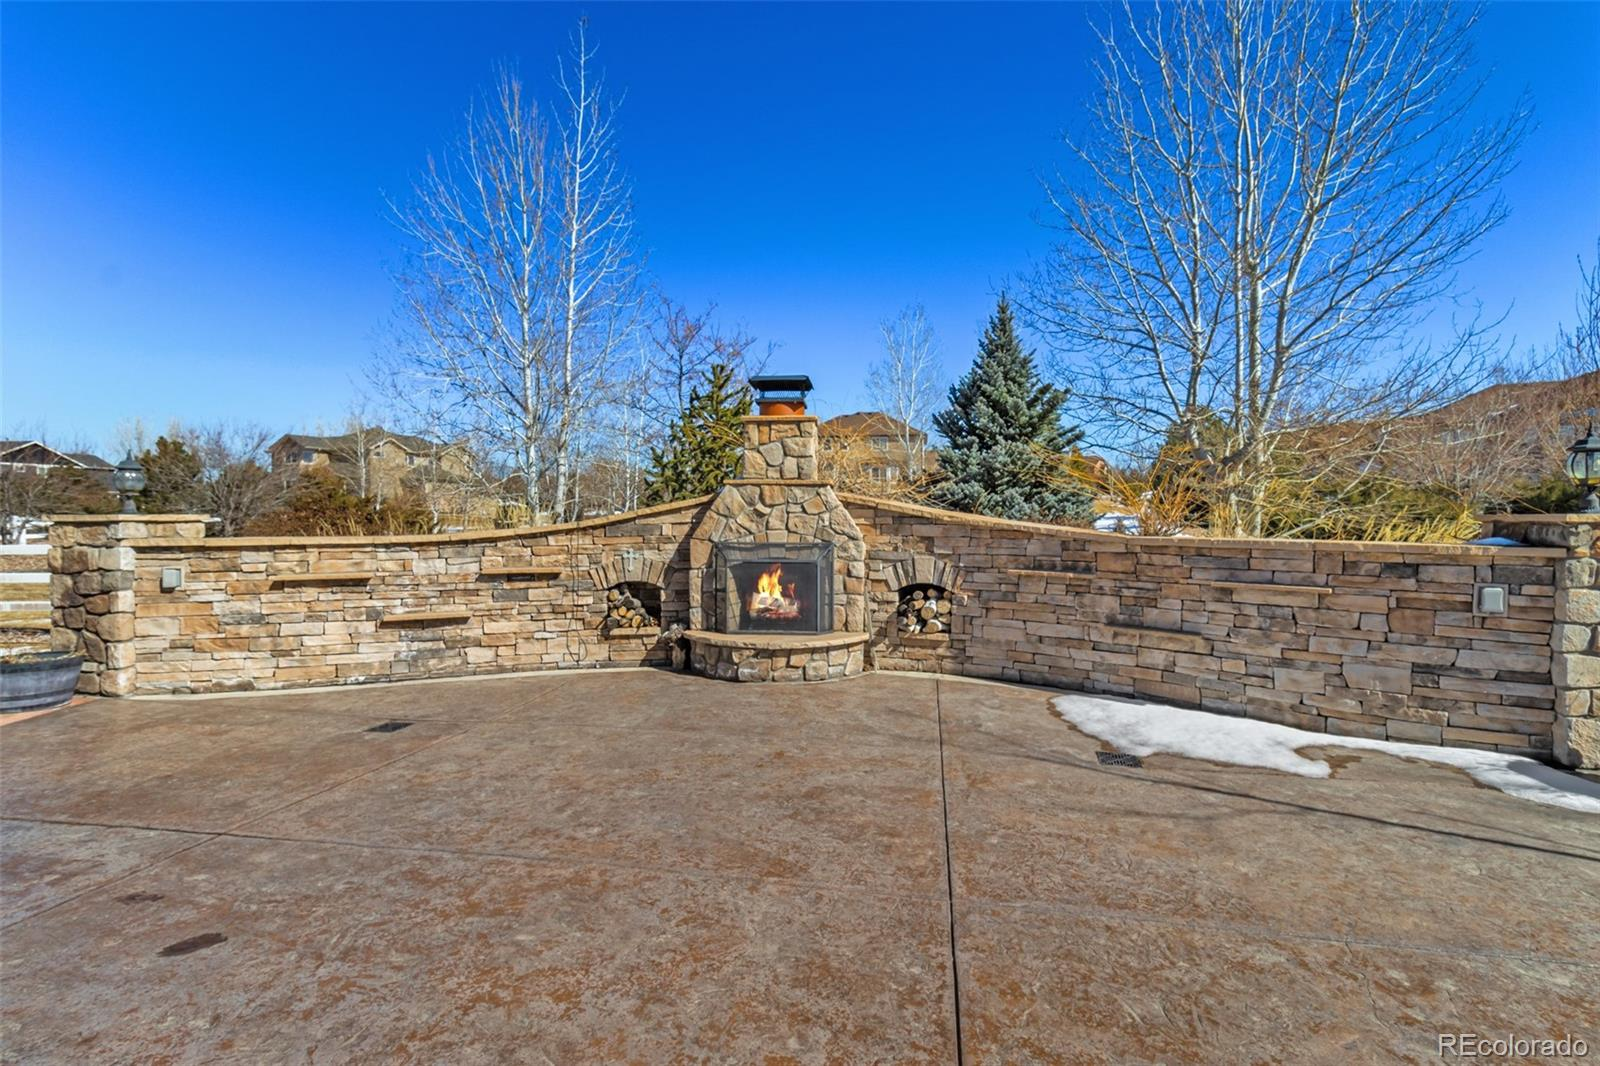 Wood burning fireplace in patio